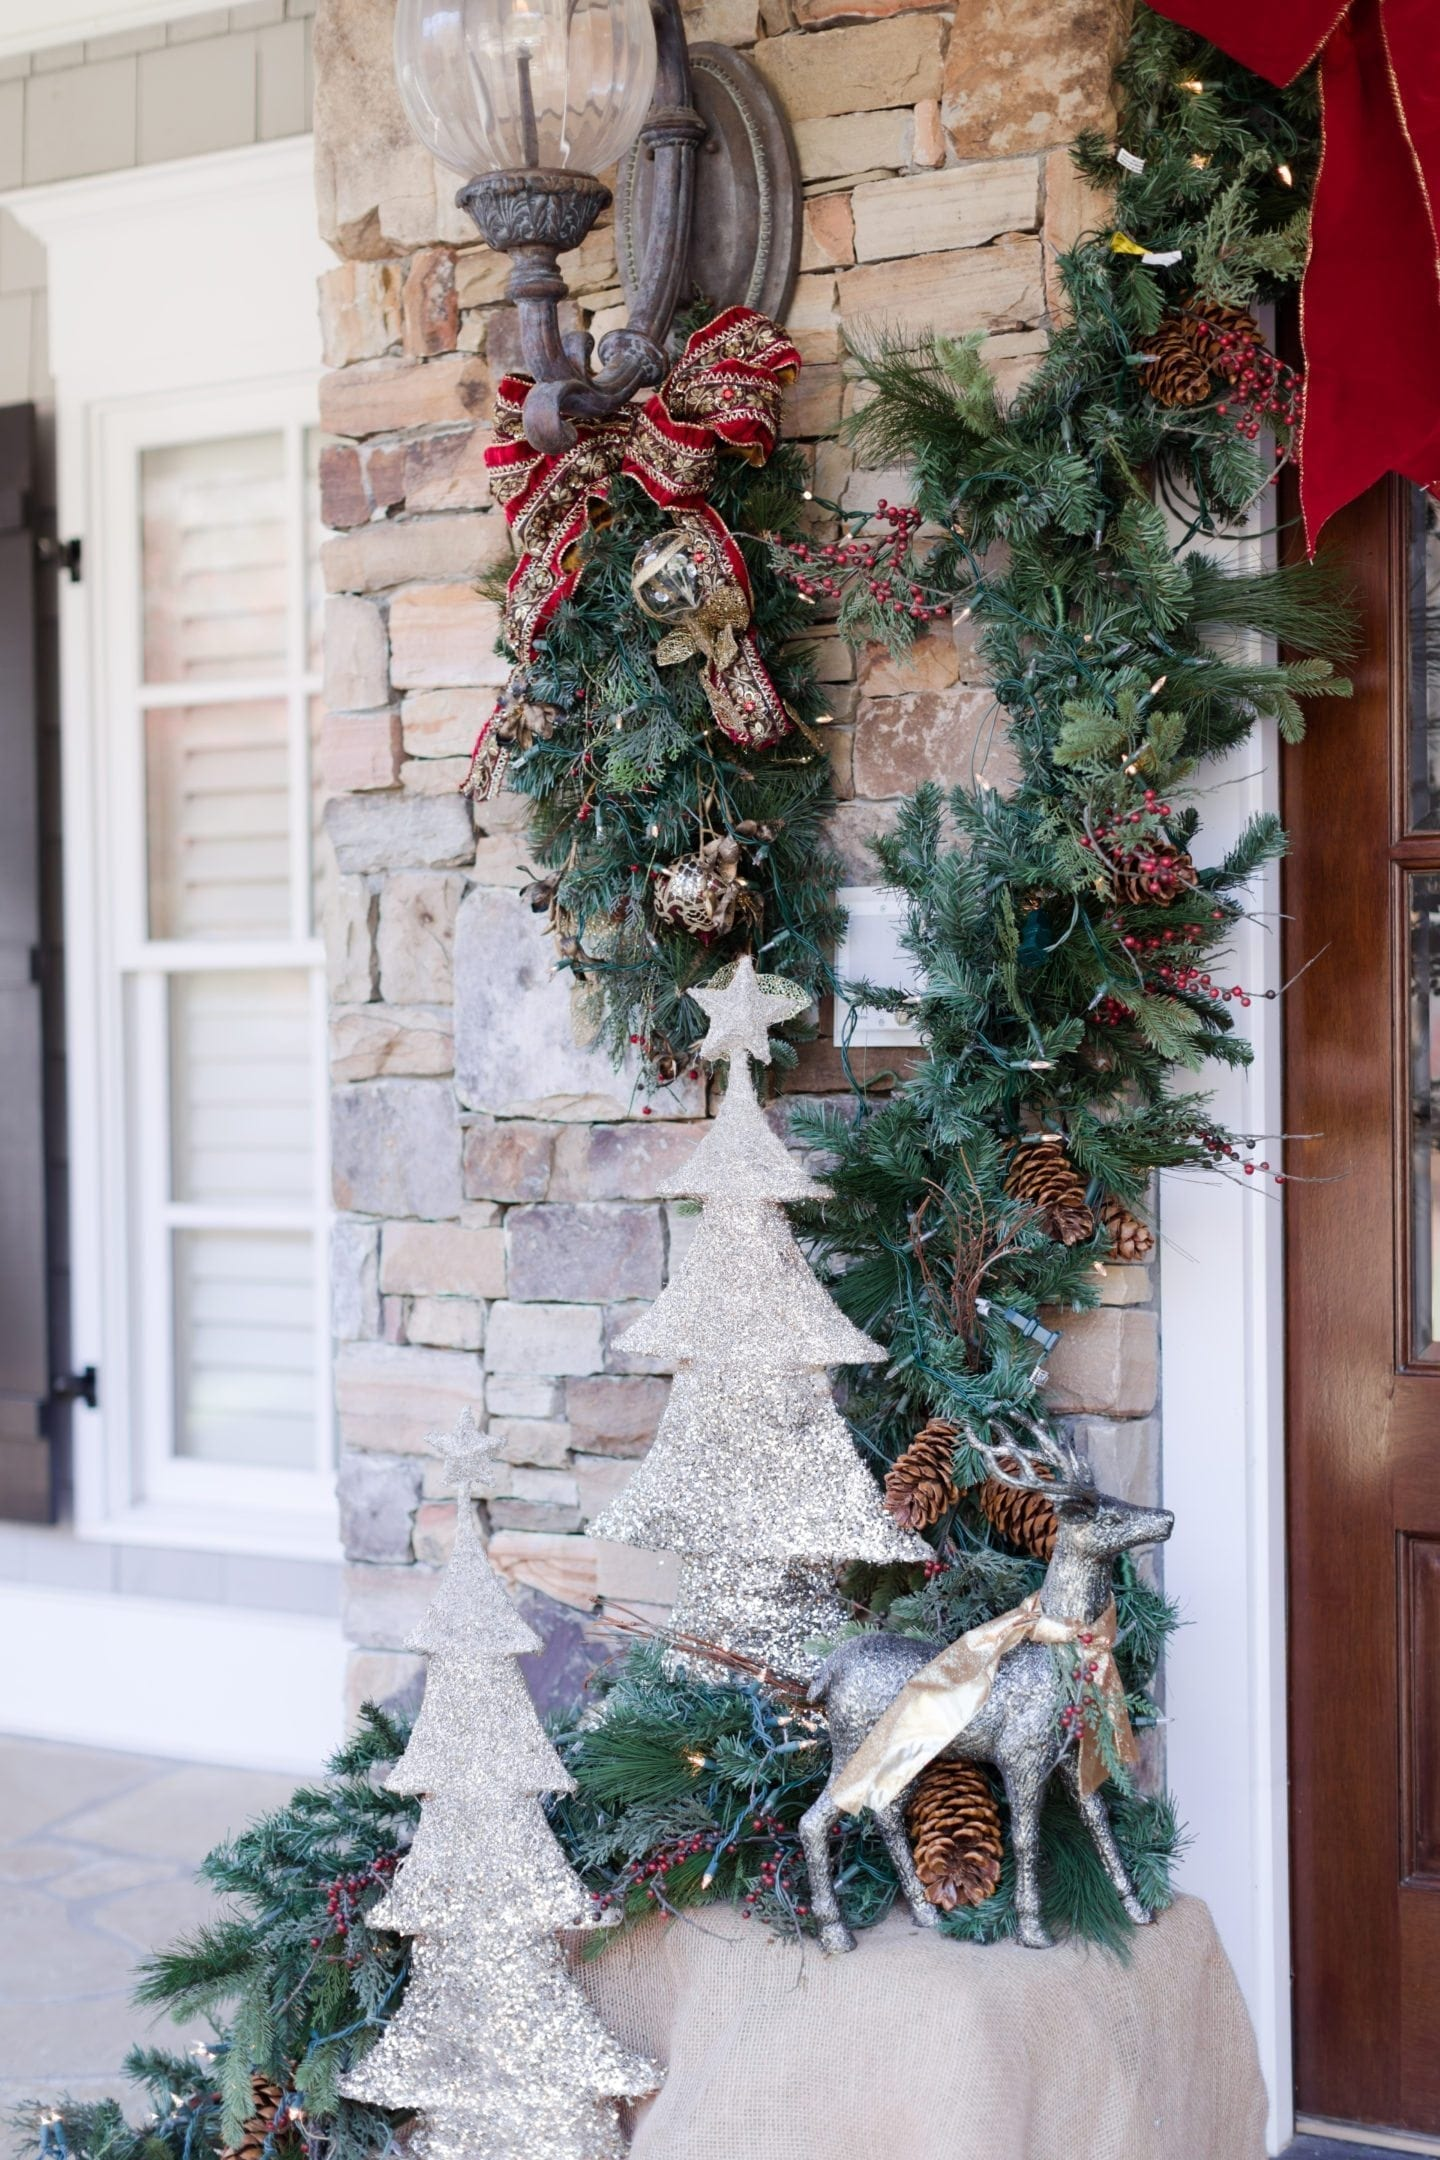 How to decorate your house for Christmas. Front door decorating ideas.